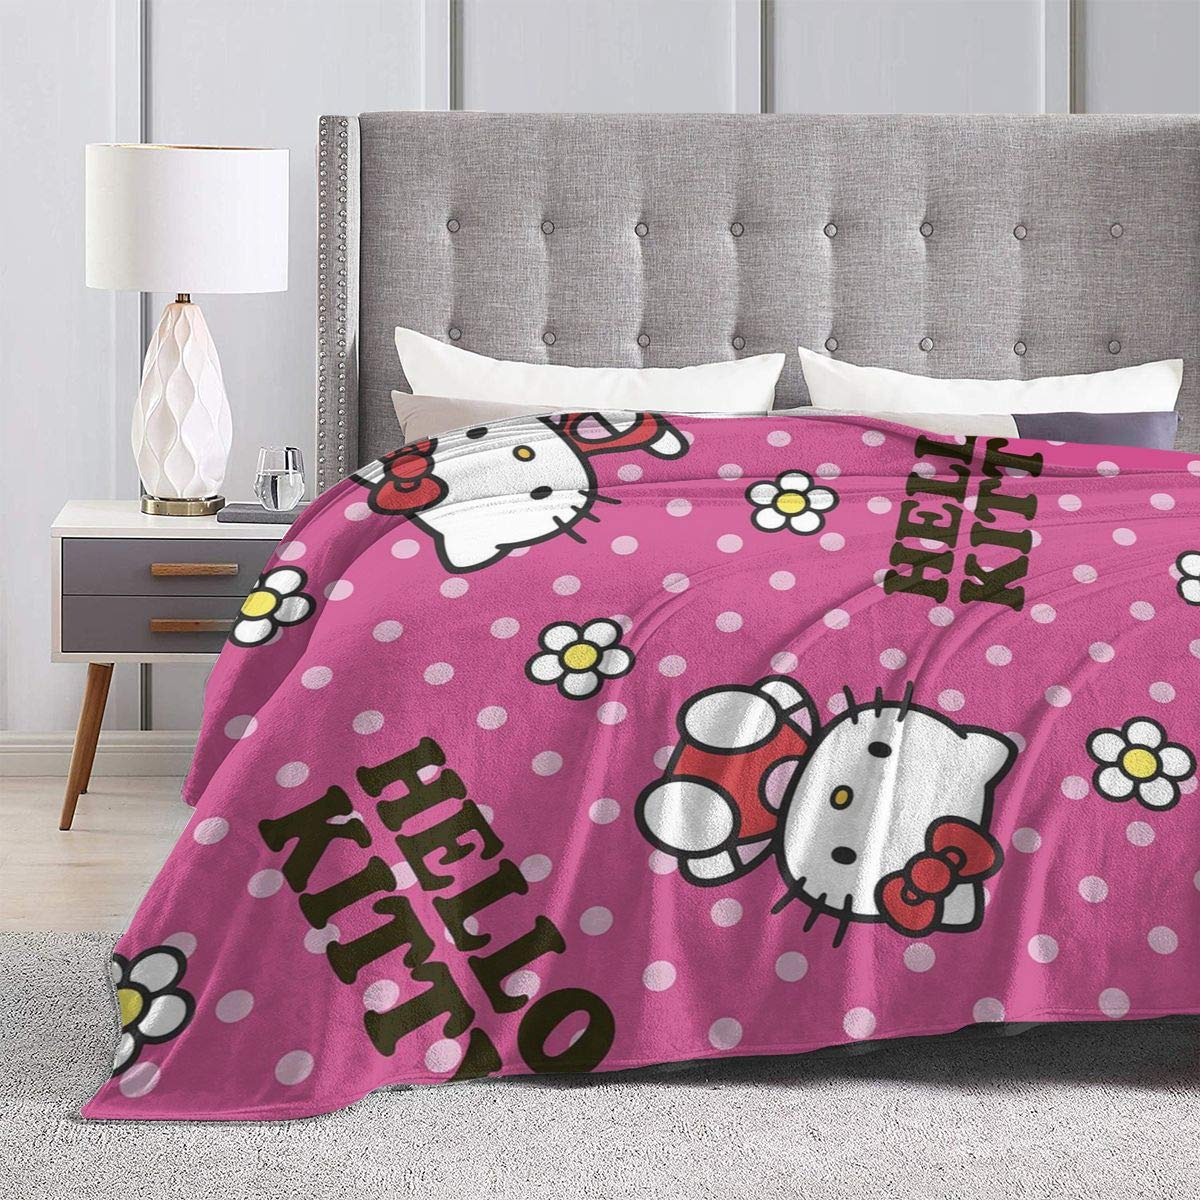 JIEKEME Flannel Blanket Hello Kitty Flower Soft Cozy Warm Throw Blanket for Bed Couch Chair Fall Winter Spring Living Room